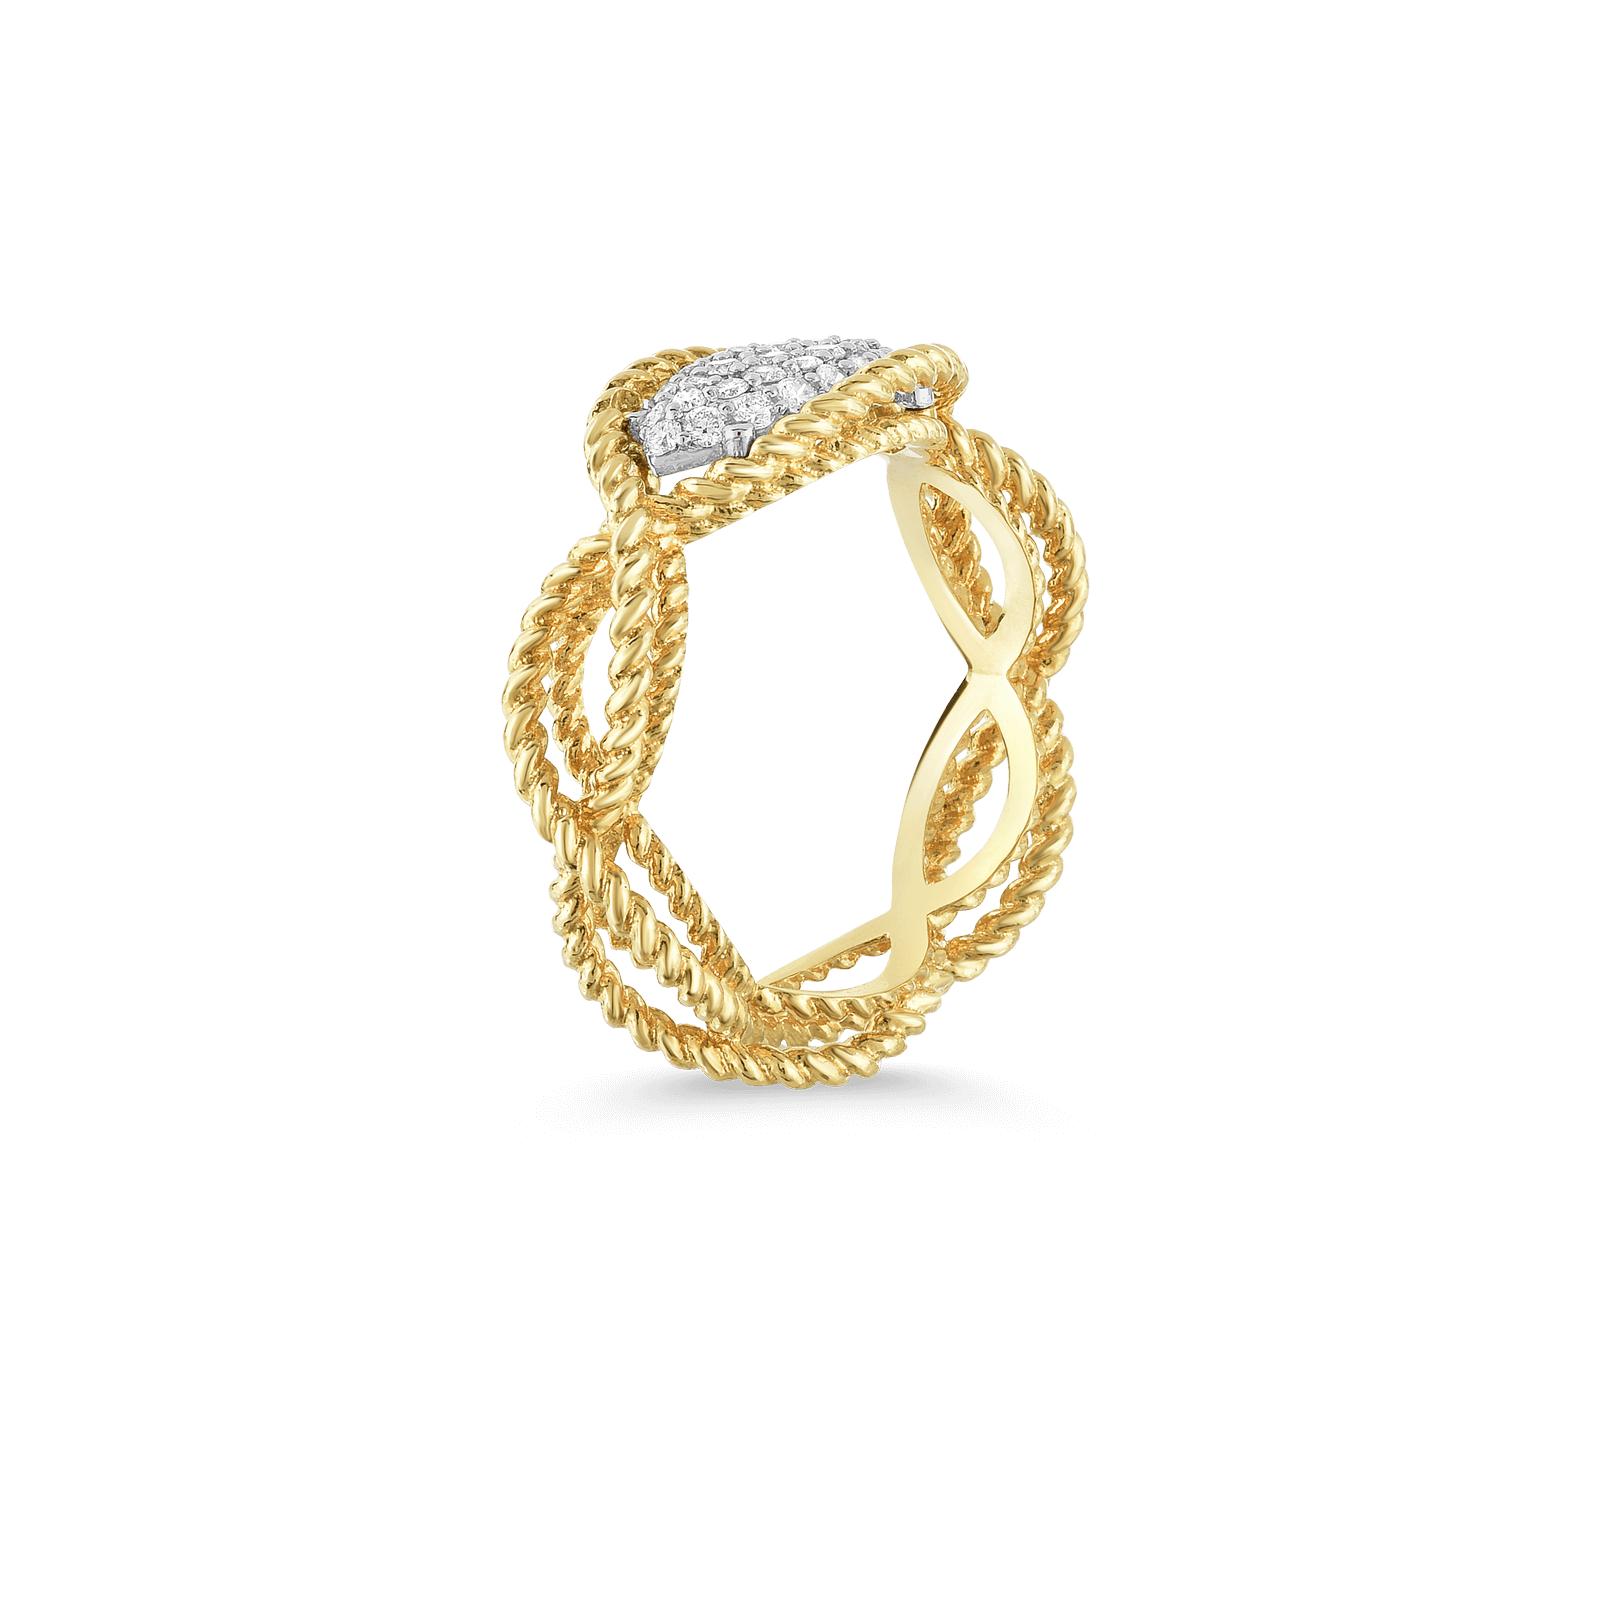 Roberto-Coin-18k-yellow-gold-18k-white-gold-1 Row Ring with Diamond Accent-7771346AJ65X-side